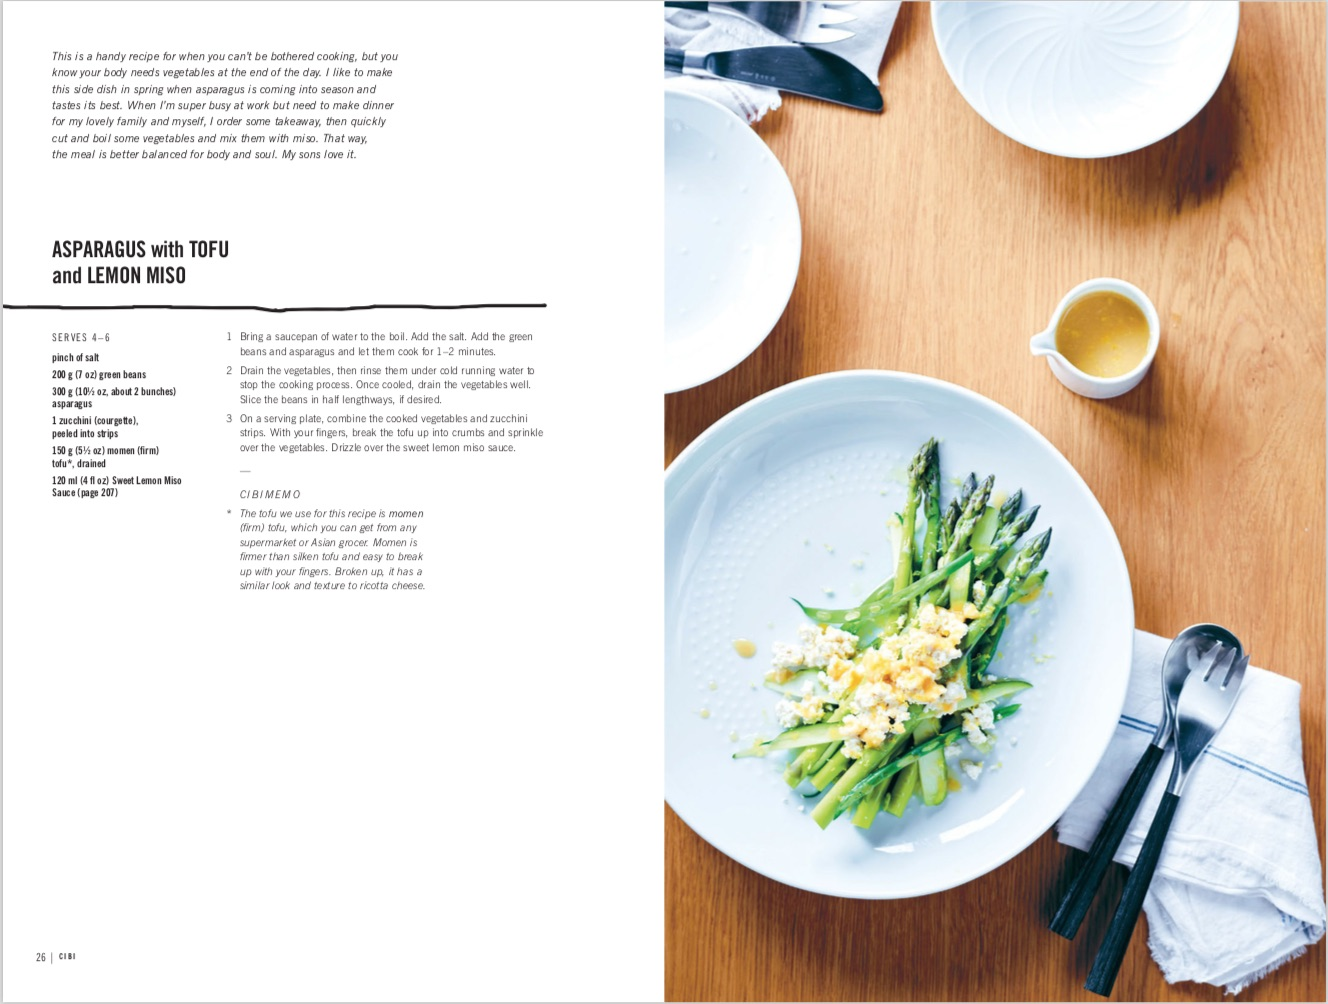 By Meg Tanaka and Zenta Tanaka from CIBI: Simple Japanese-inspired Meals to Share with Family and Friends copyright Hardie Grant Books 2018